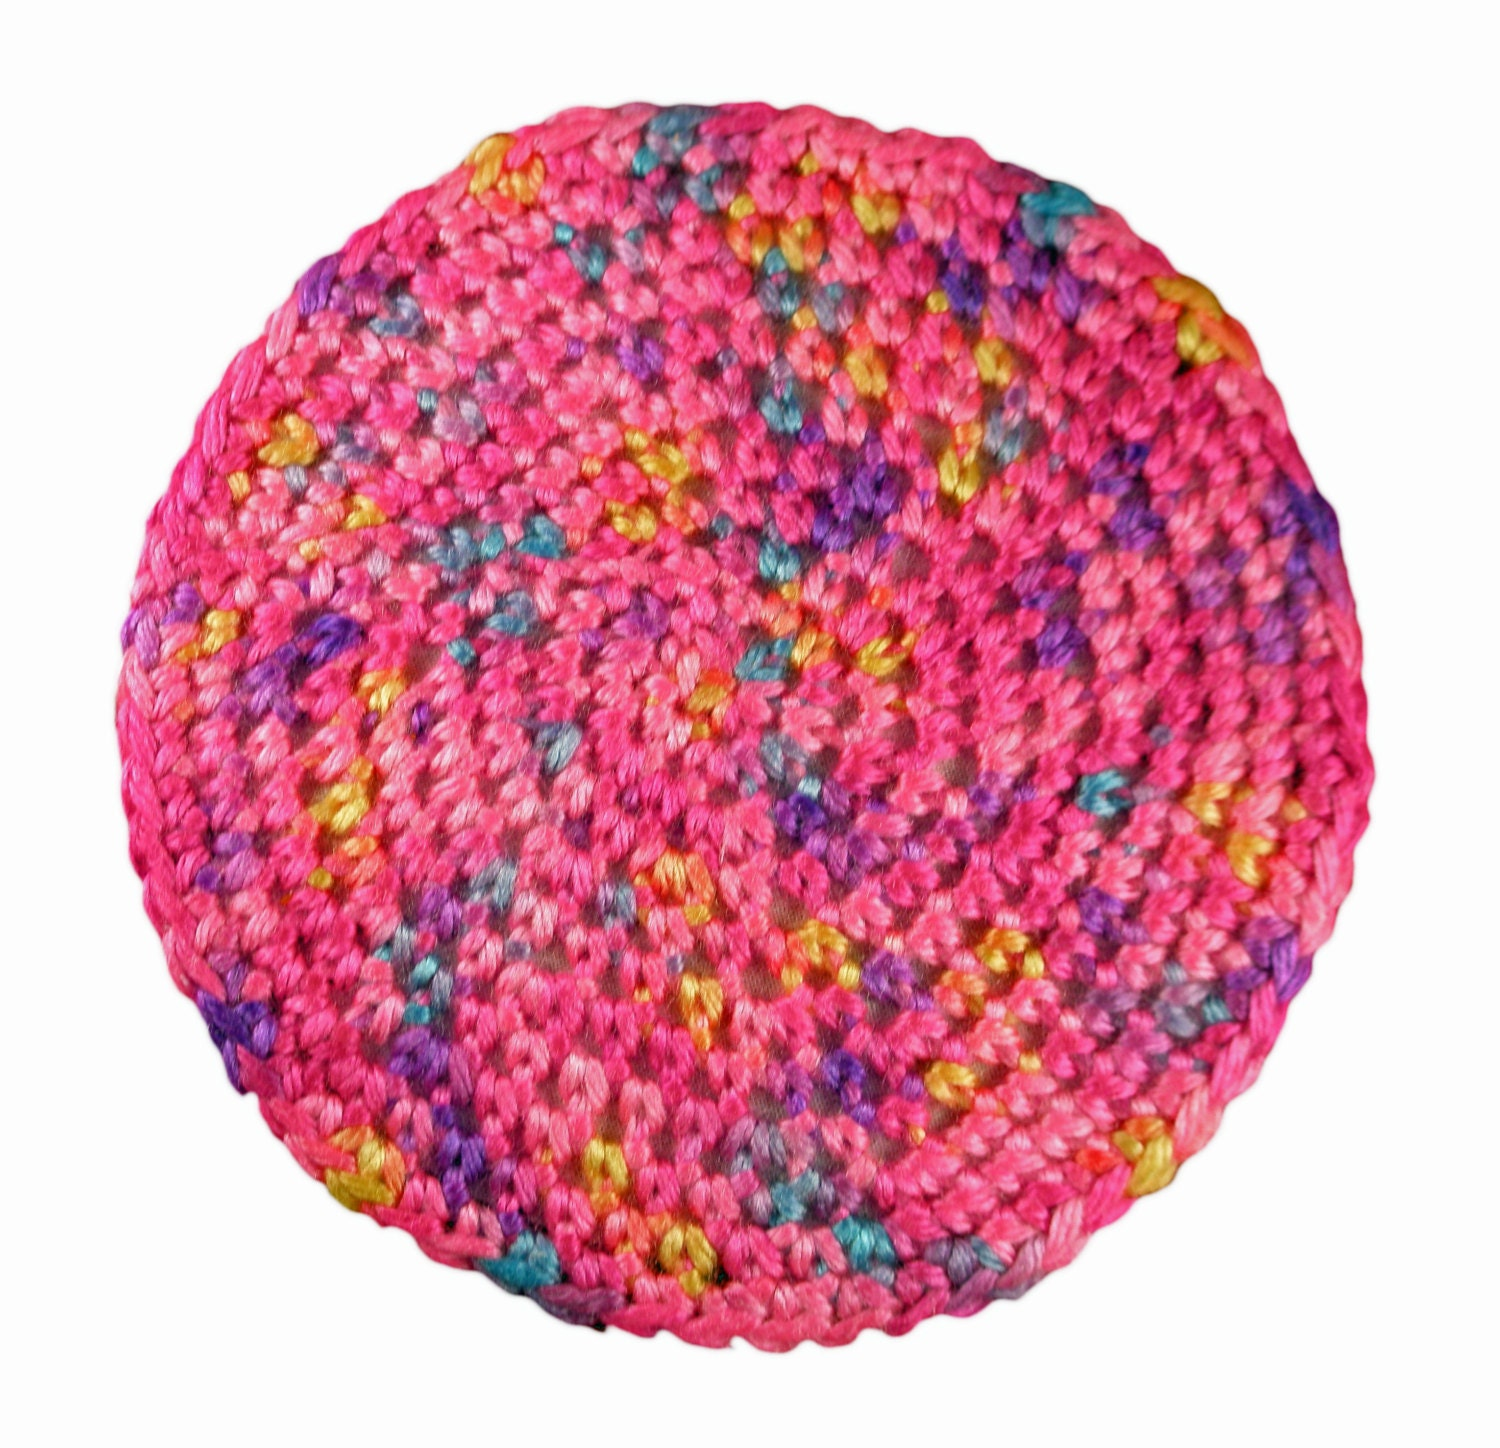 Doll Crocheted Rug Pink Multi-colored 6 Round Area Rug